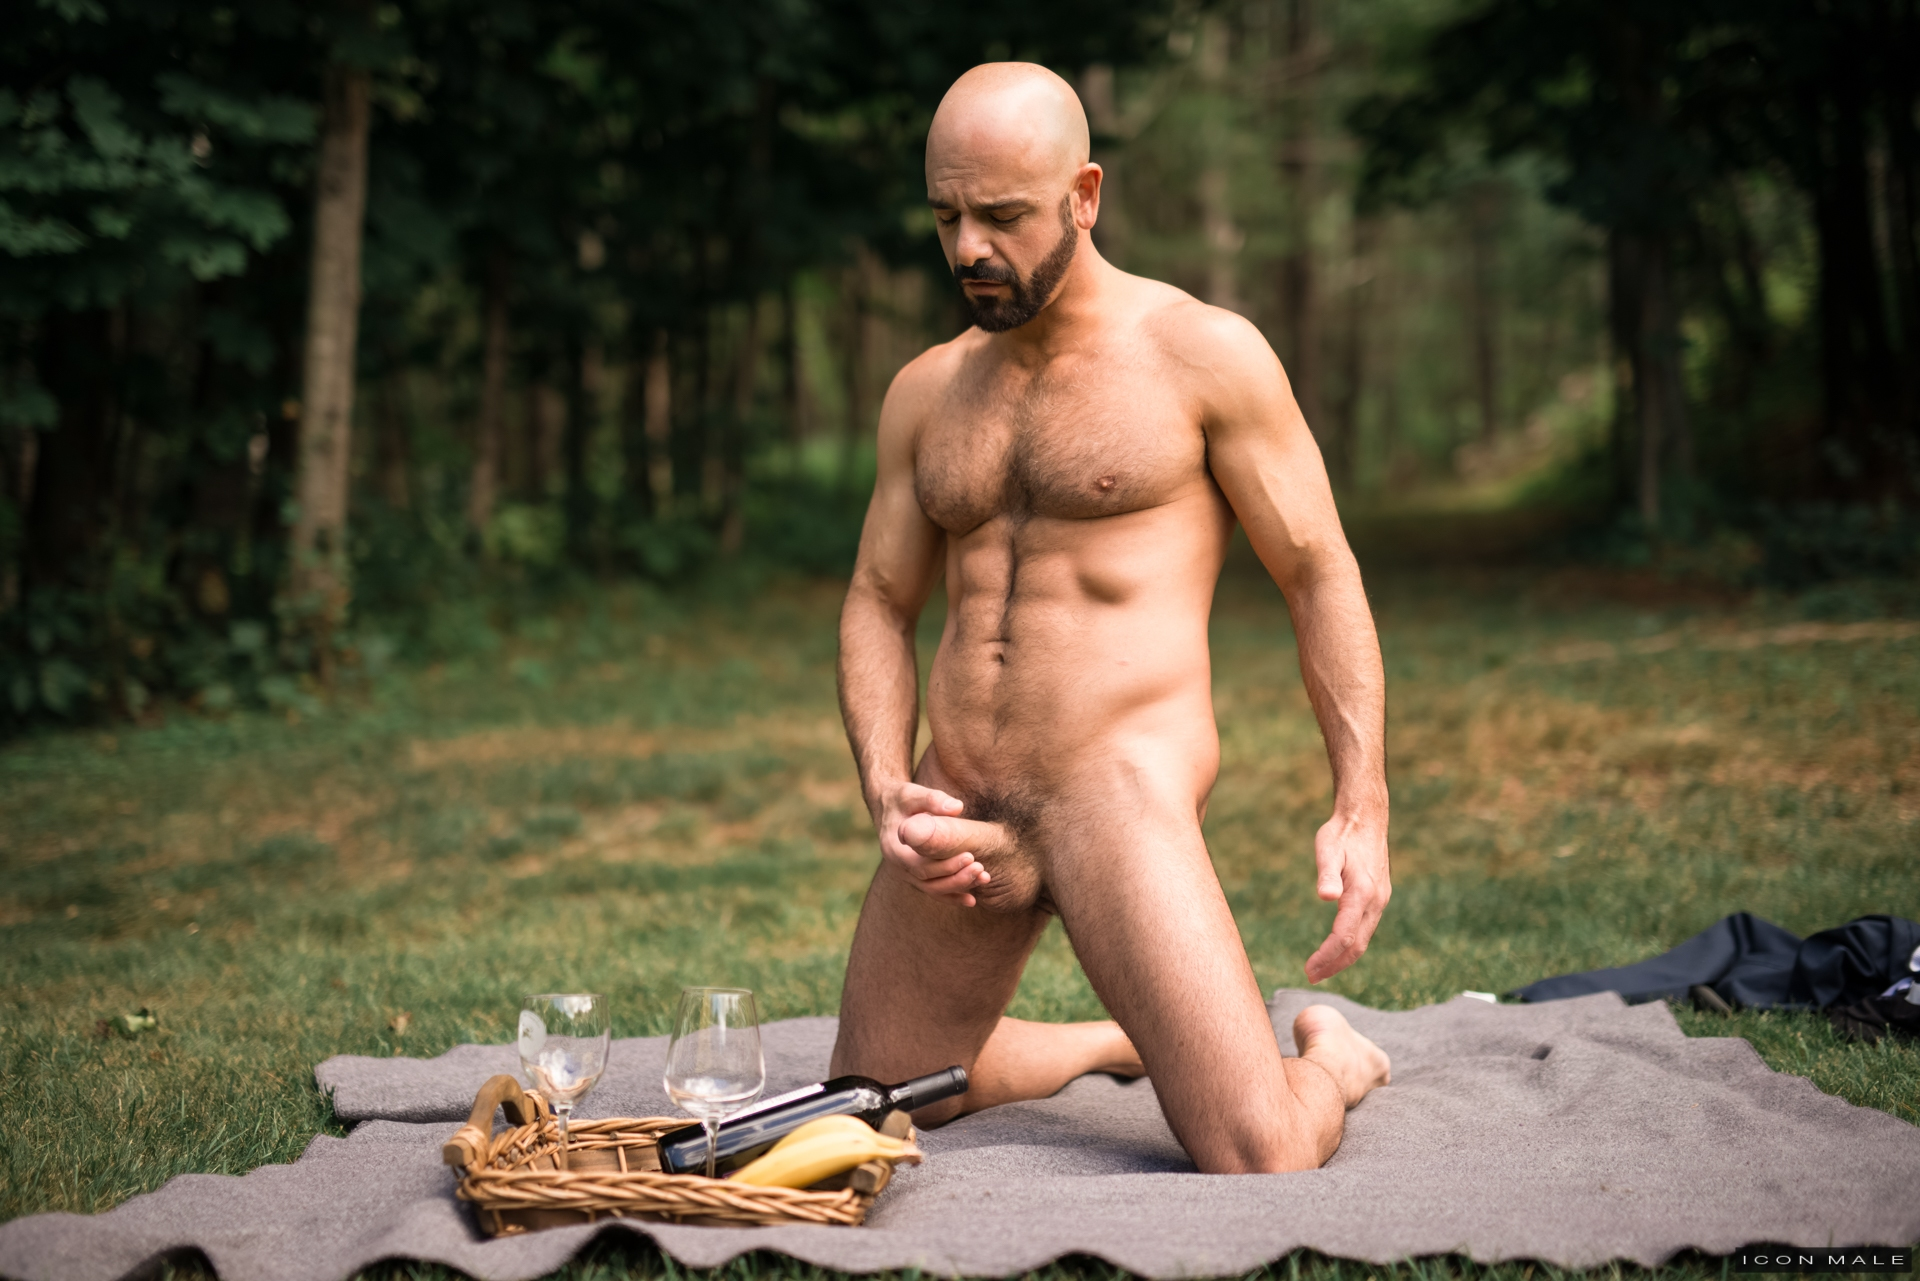 Adam Russo soaks in a hot Facetious perform one's ablutions with young bung up Brandon Wilde. Sipping his drink and relaxing to the fullest Brandon rubs his Daddy's feet. If Brandon wants him to help emendate his Jeep, he needs to help him relax another w